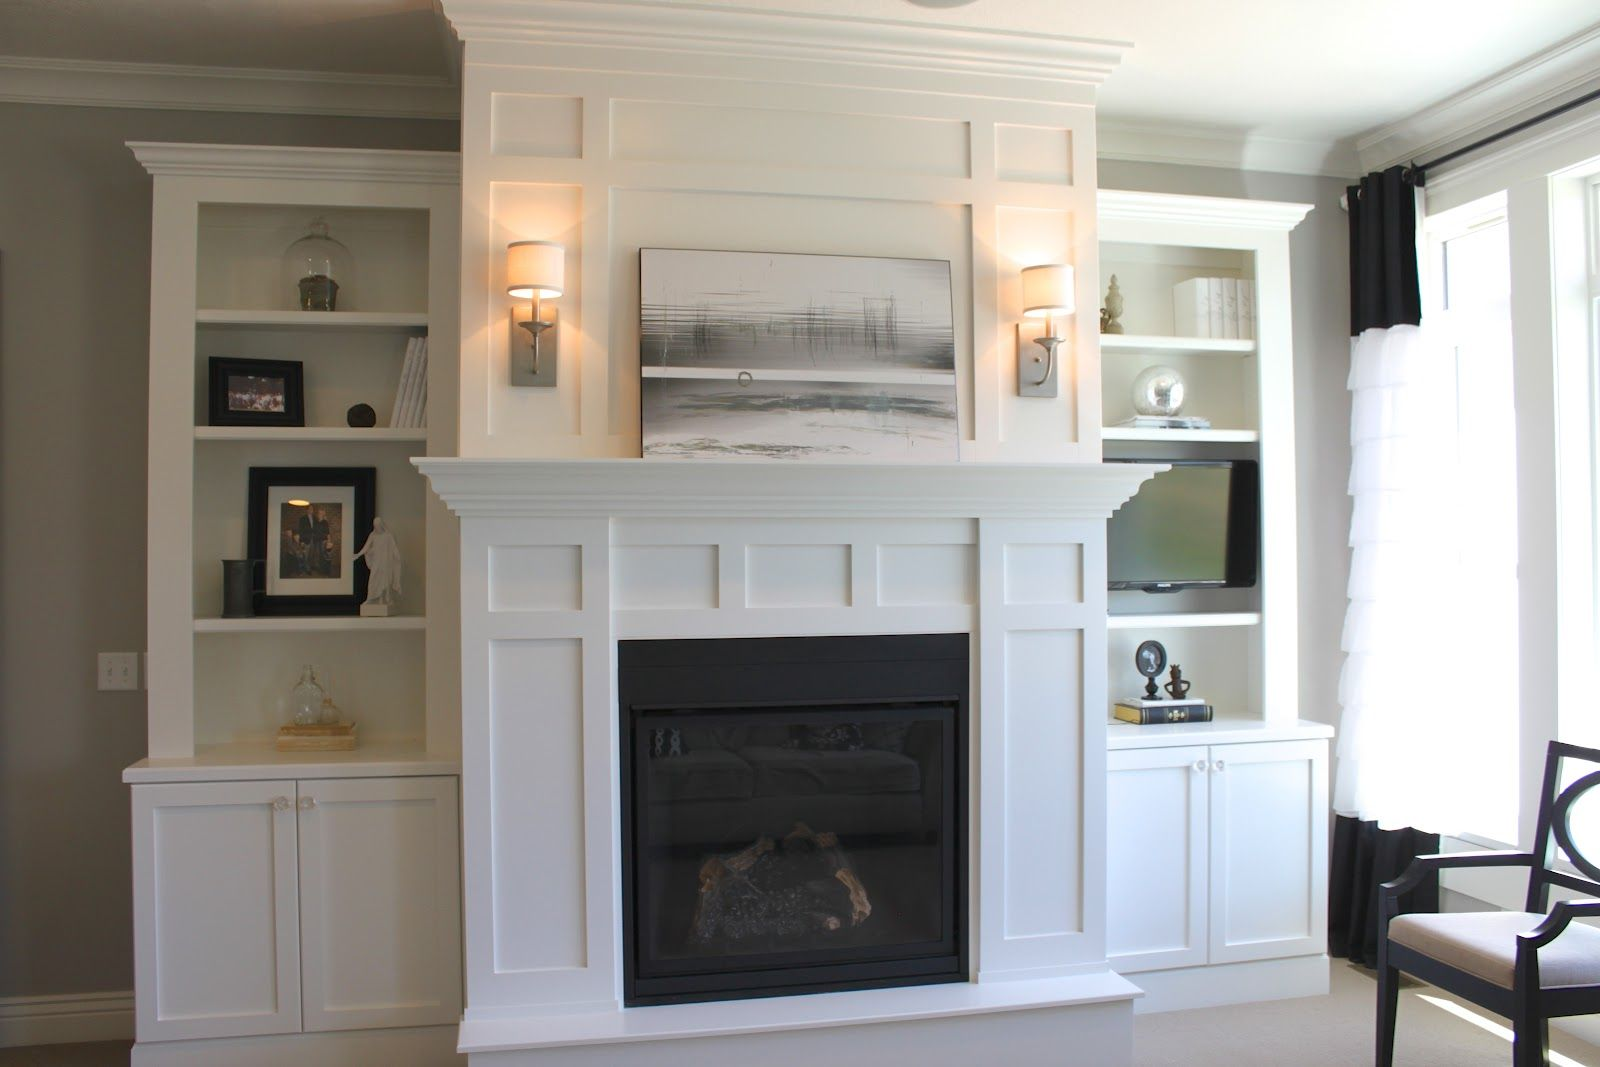 fireplaces with bookshelves on each side the shelves